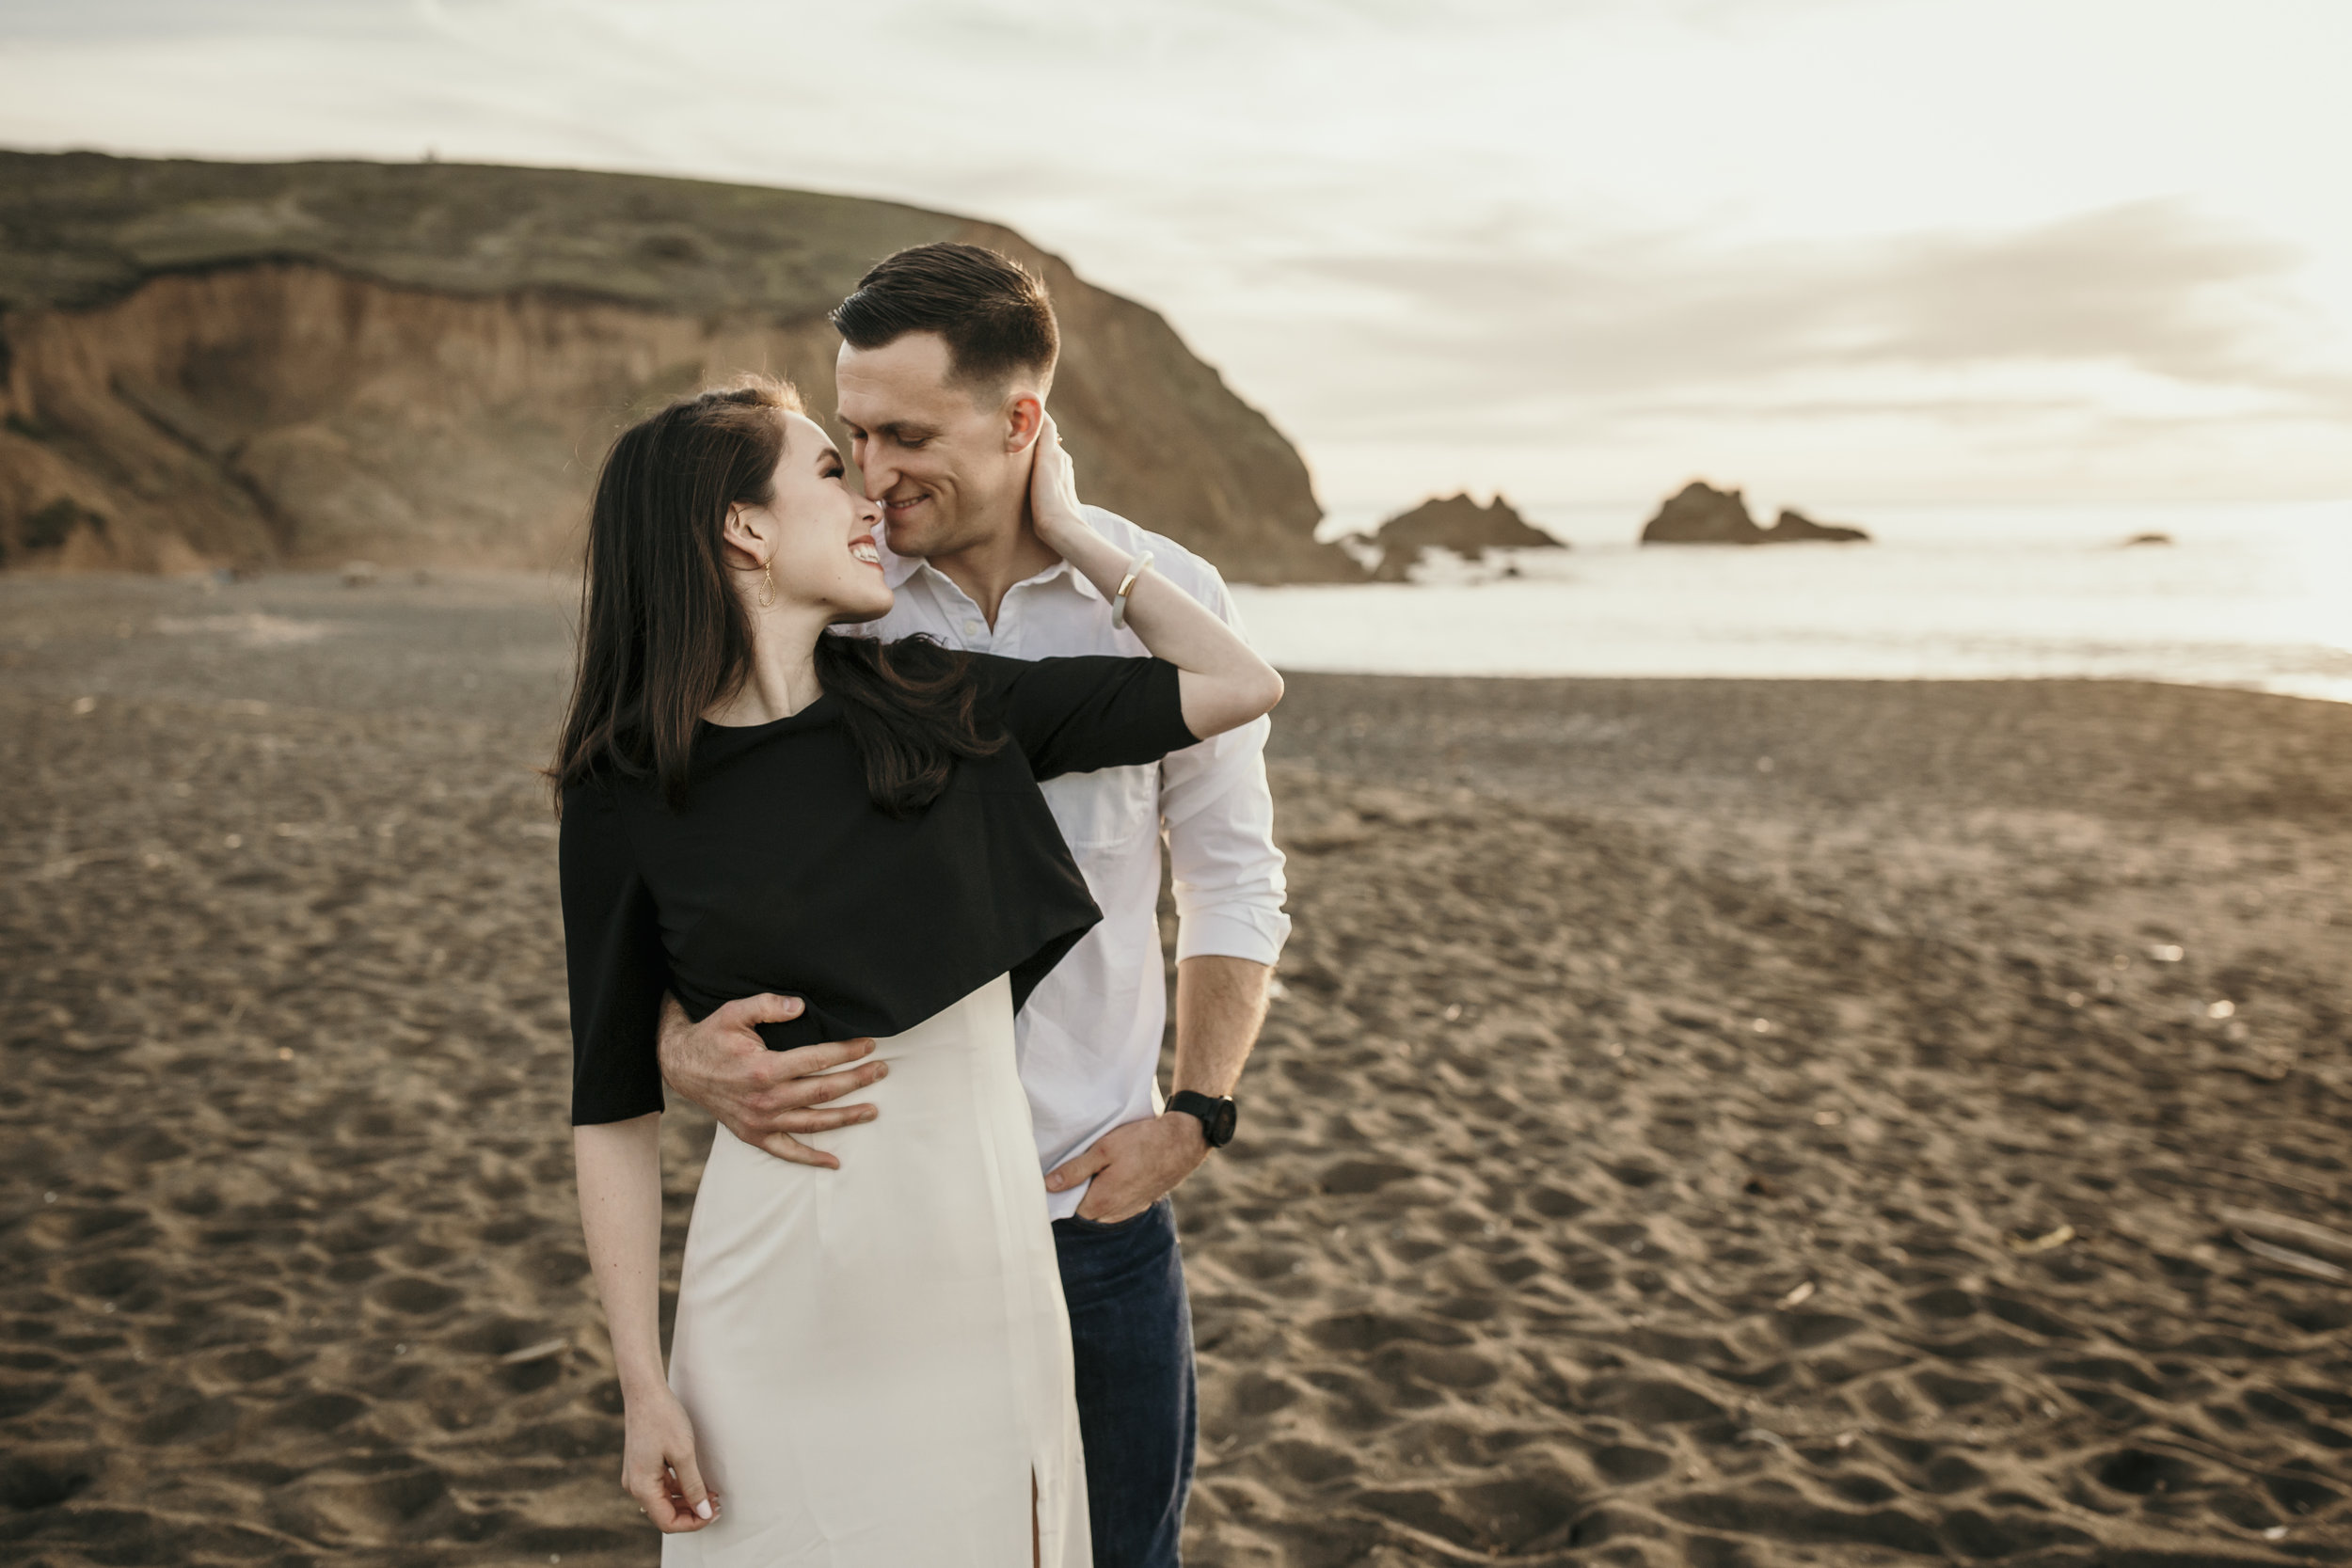 san francisco engagement + wedding photography by bre thurston | outside lifestyle photographer in the bay area | engaged couple on the beach at sunset